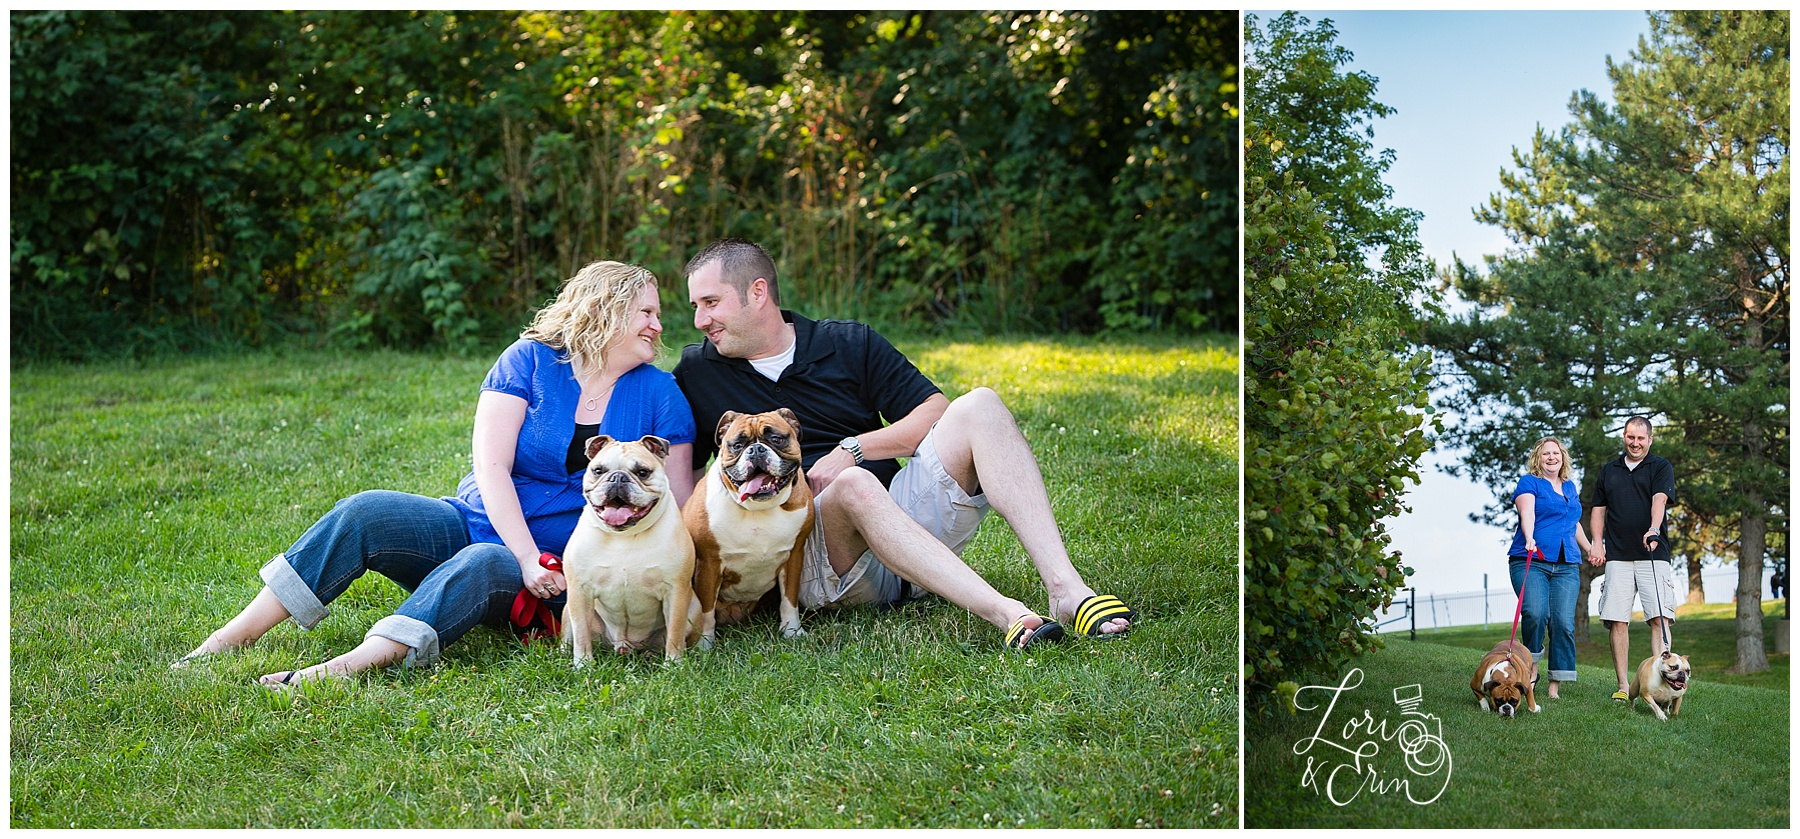 Cobbs Hill Engagement Session, Rochester NY Engagement Session